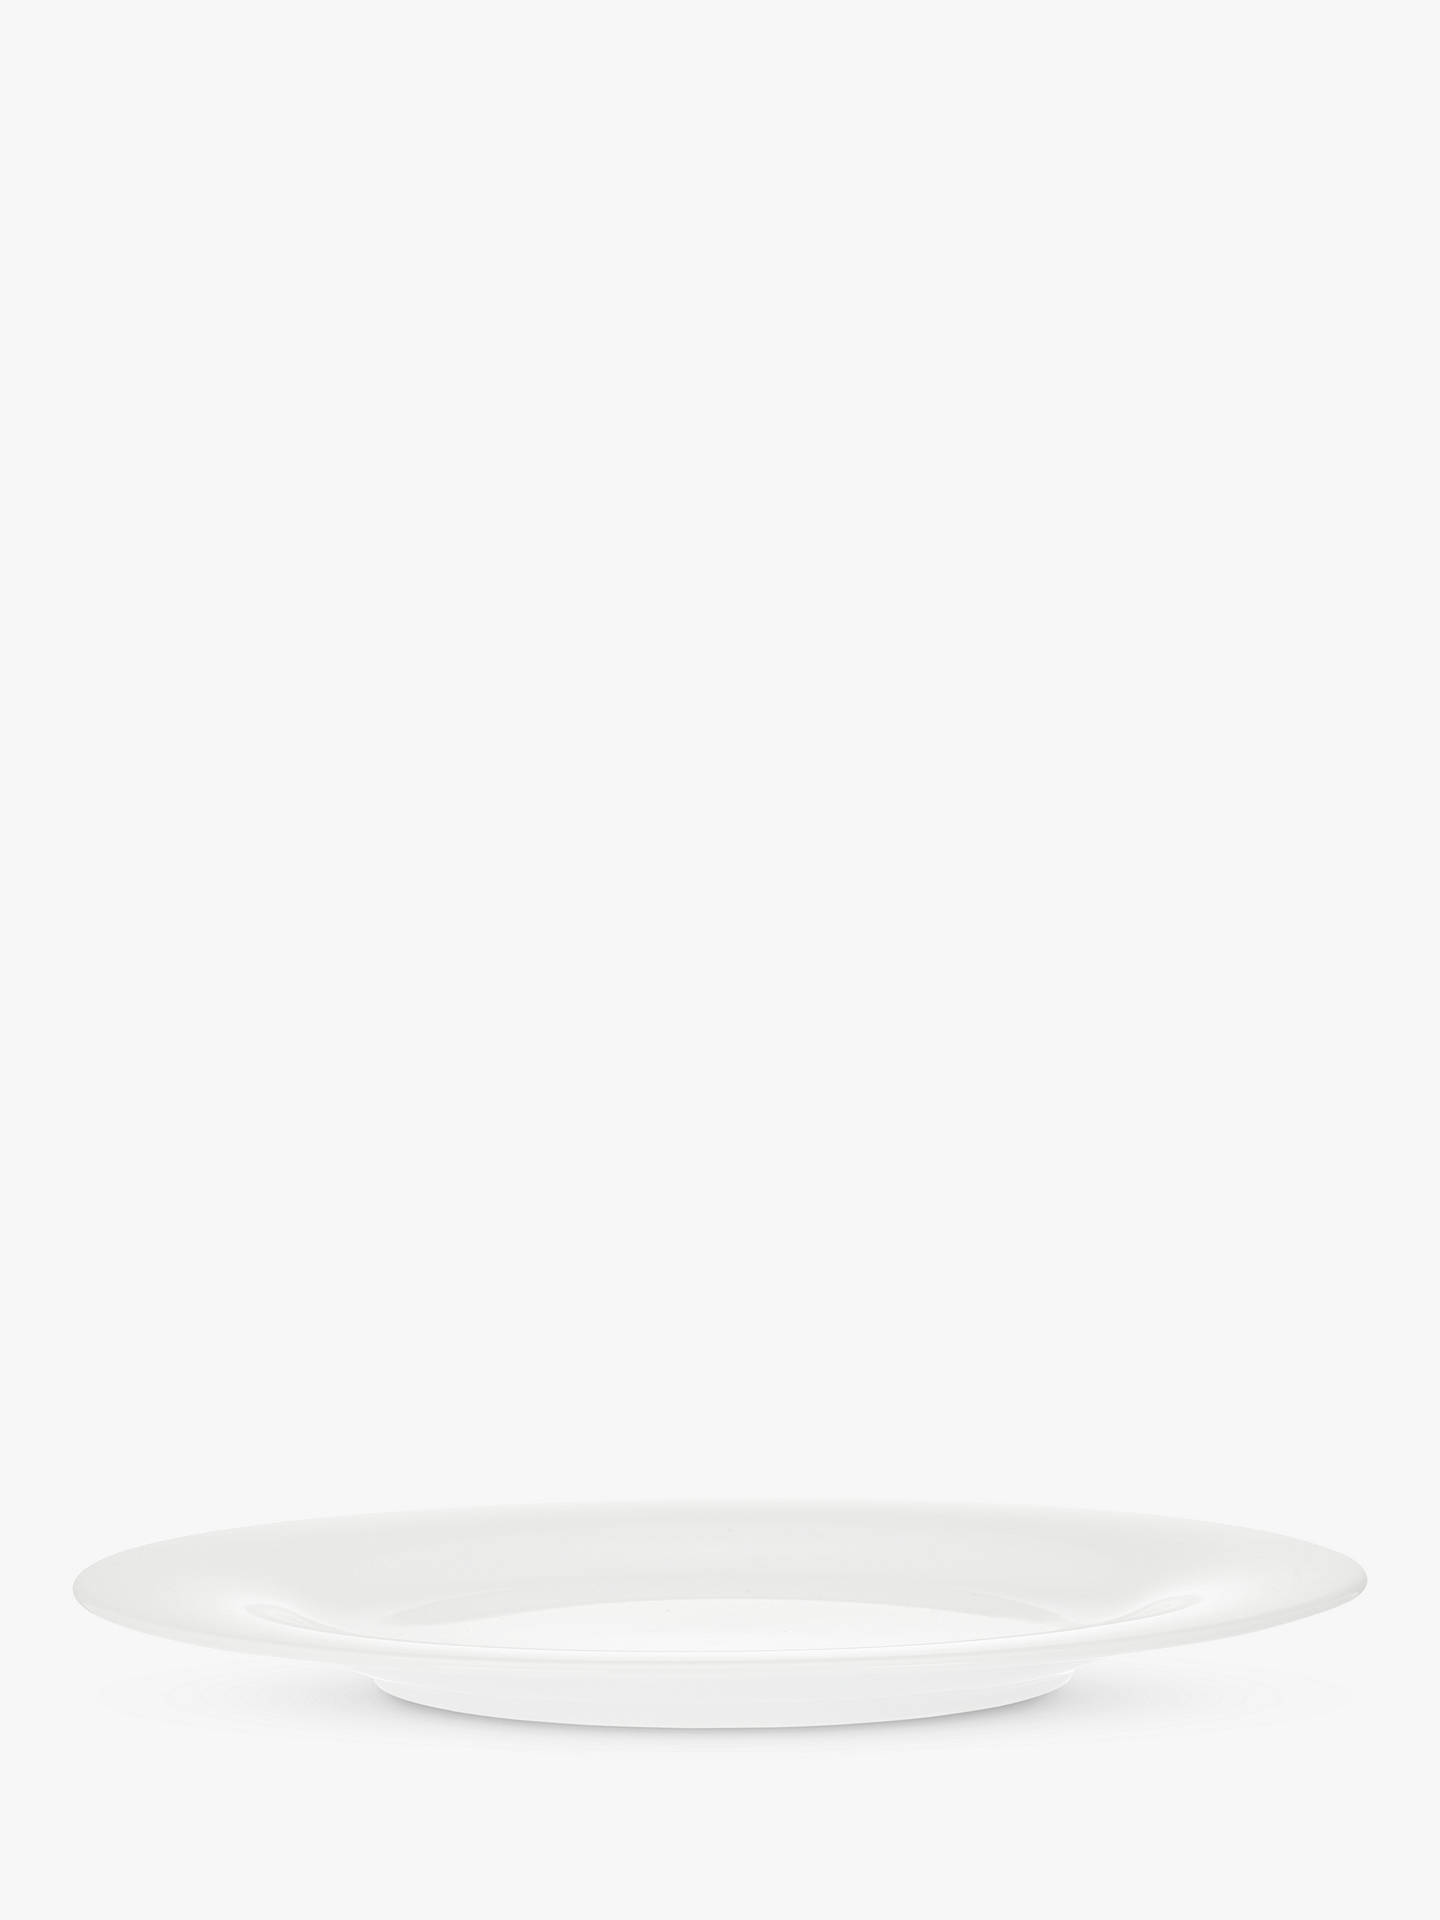 BuyHouse by John Lewis Eat 28cm Rim Dinner Plate, White Online at johnlewis.com